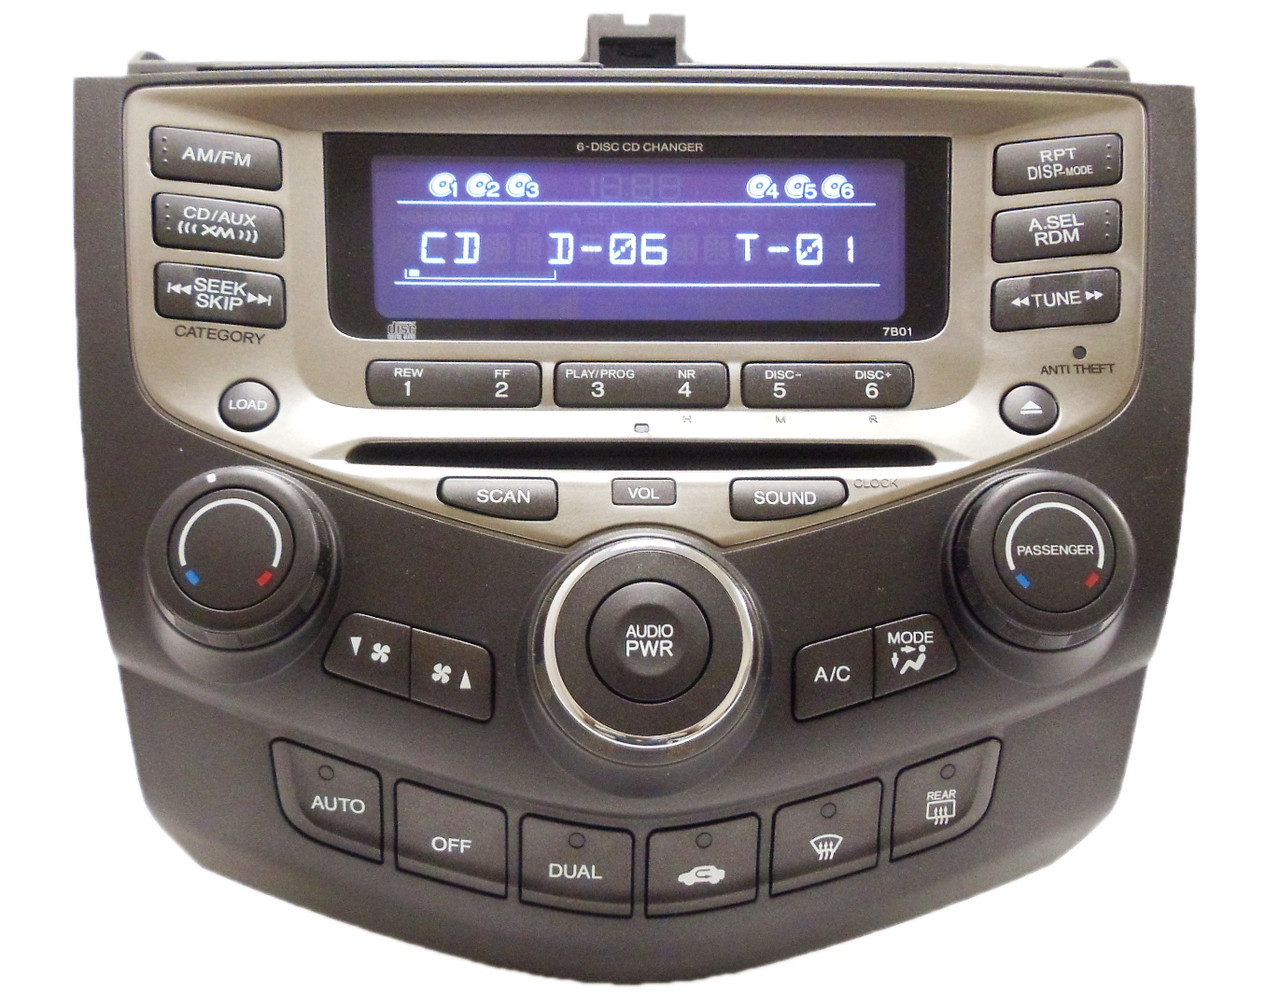 05 06 07 honda accord radio xm aux 6 disc changer cd. Black Bedroom Furniture Sets. Home Design Ideas